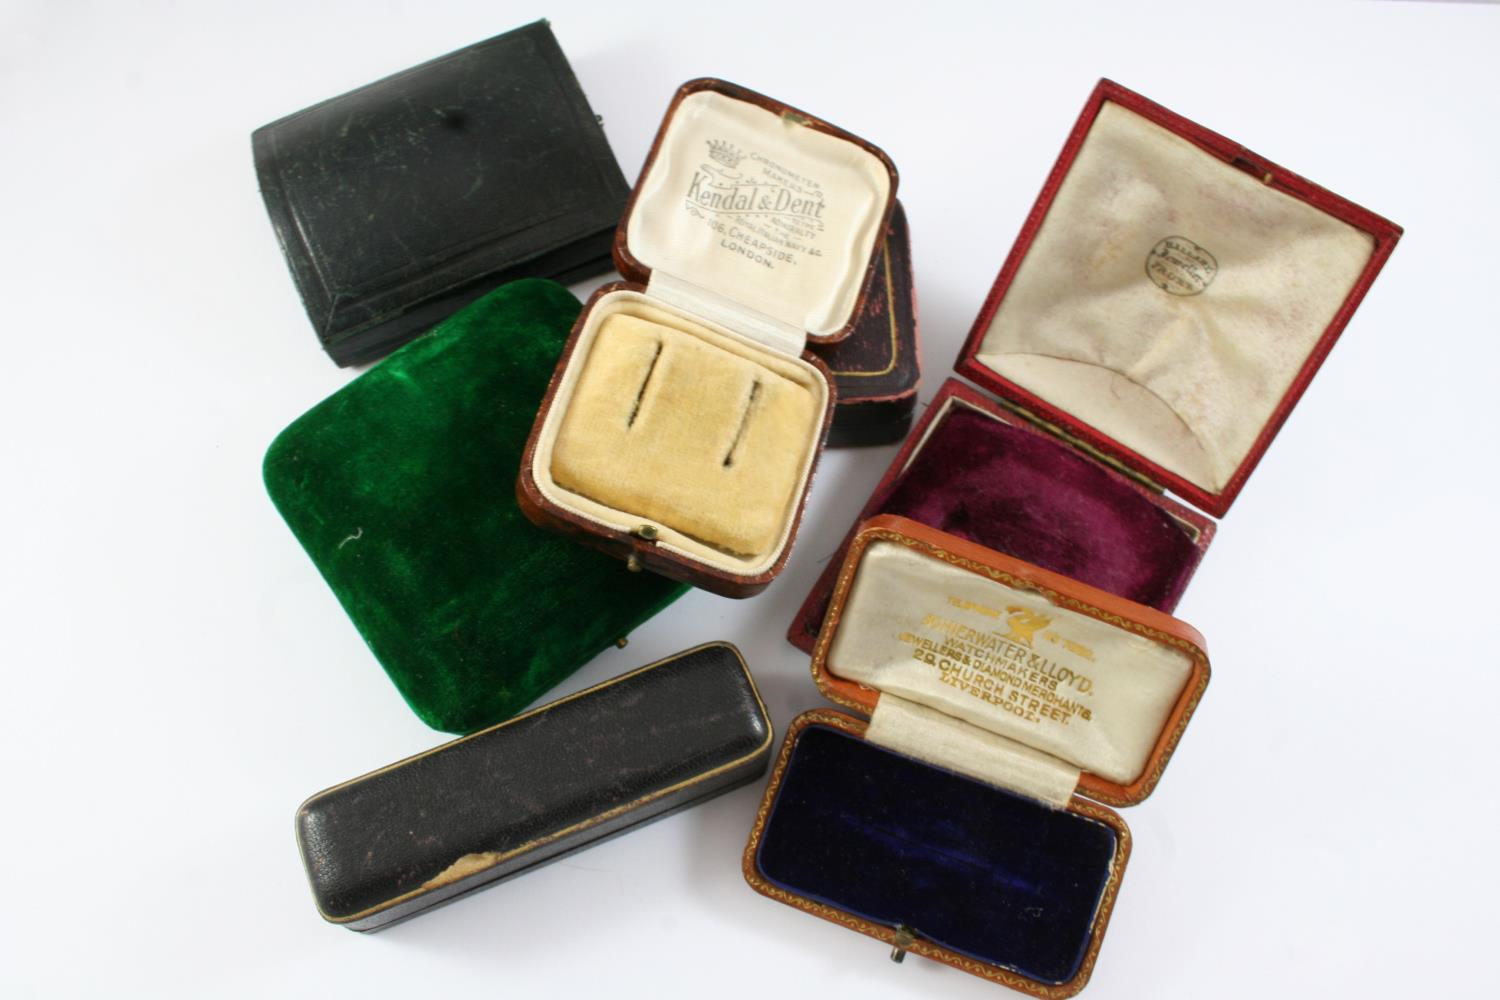 A LARGE QUANTITY OF ASSORTED ANTIQUE JEWELLERY BOXES - Image 3 of 8